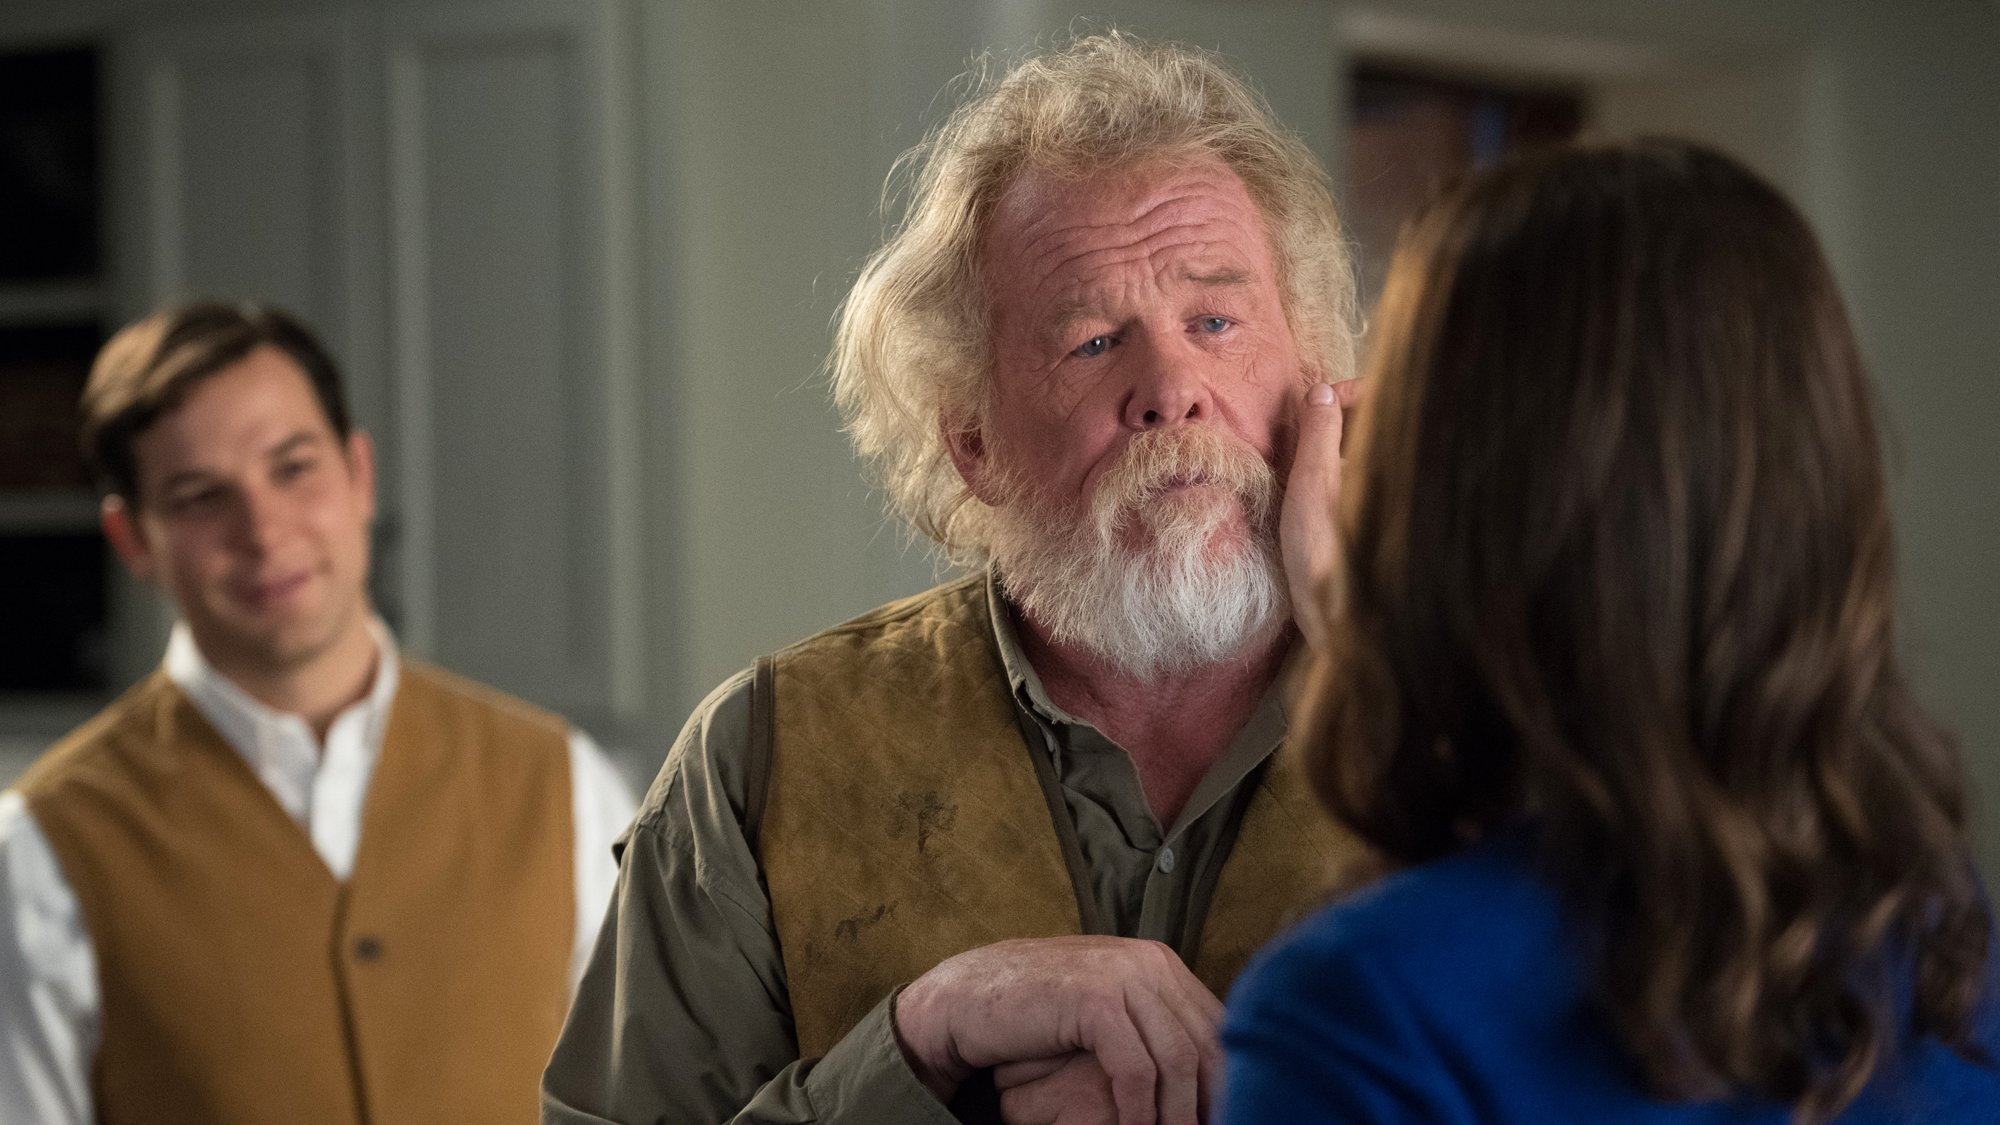 Upcoming Nick Nolte New Movies / TV Shows (2019, 2020)